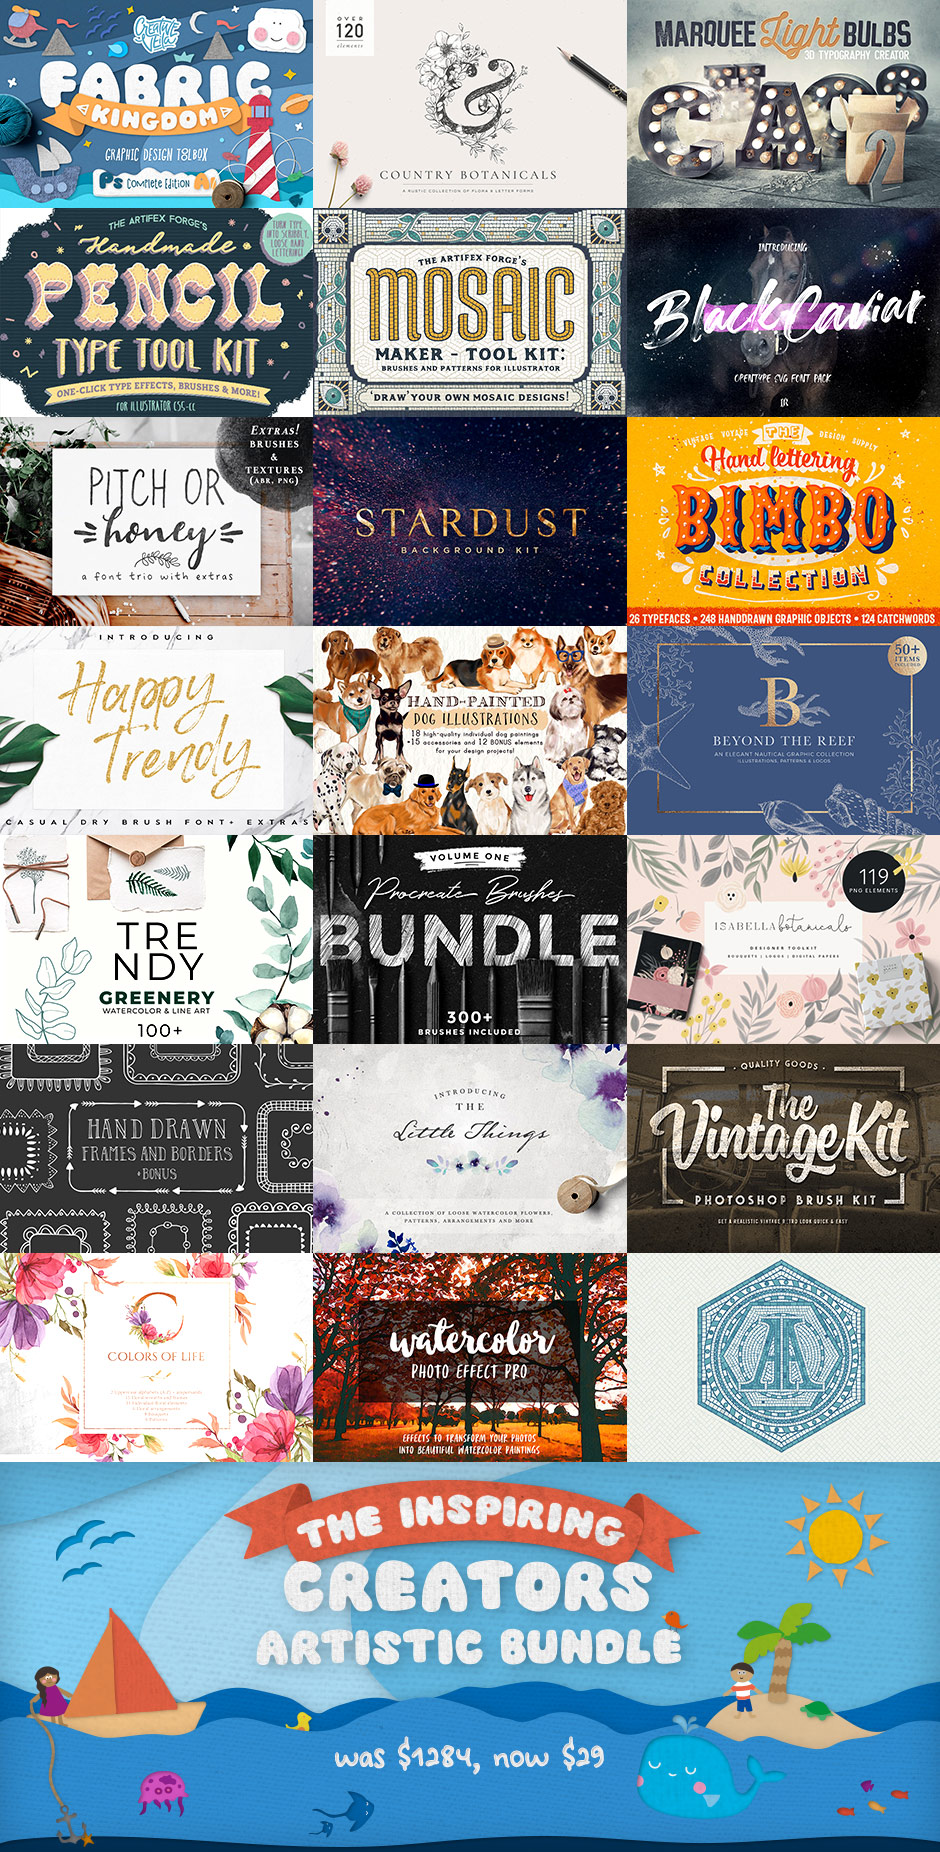 The Inspiring Creator's Artistic Bundle